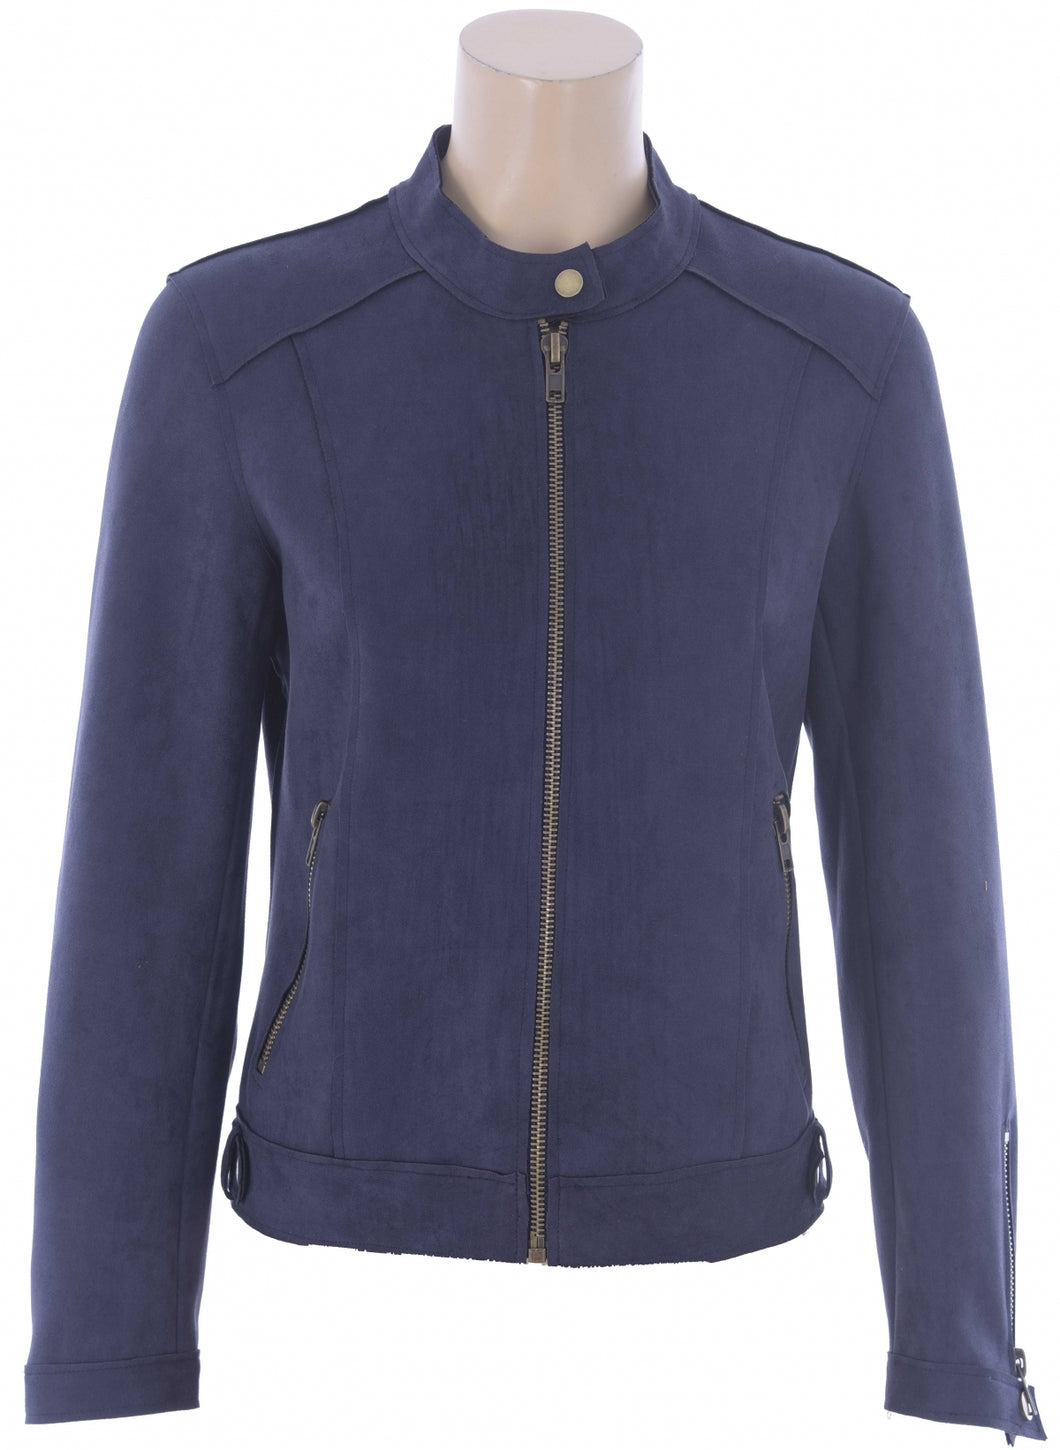 K-Design Jacket R552 -Navy